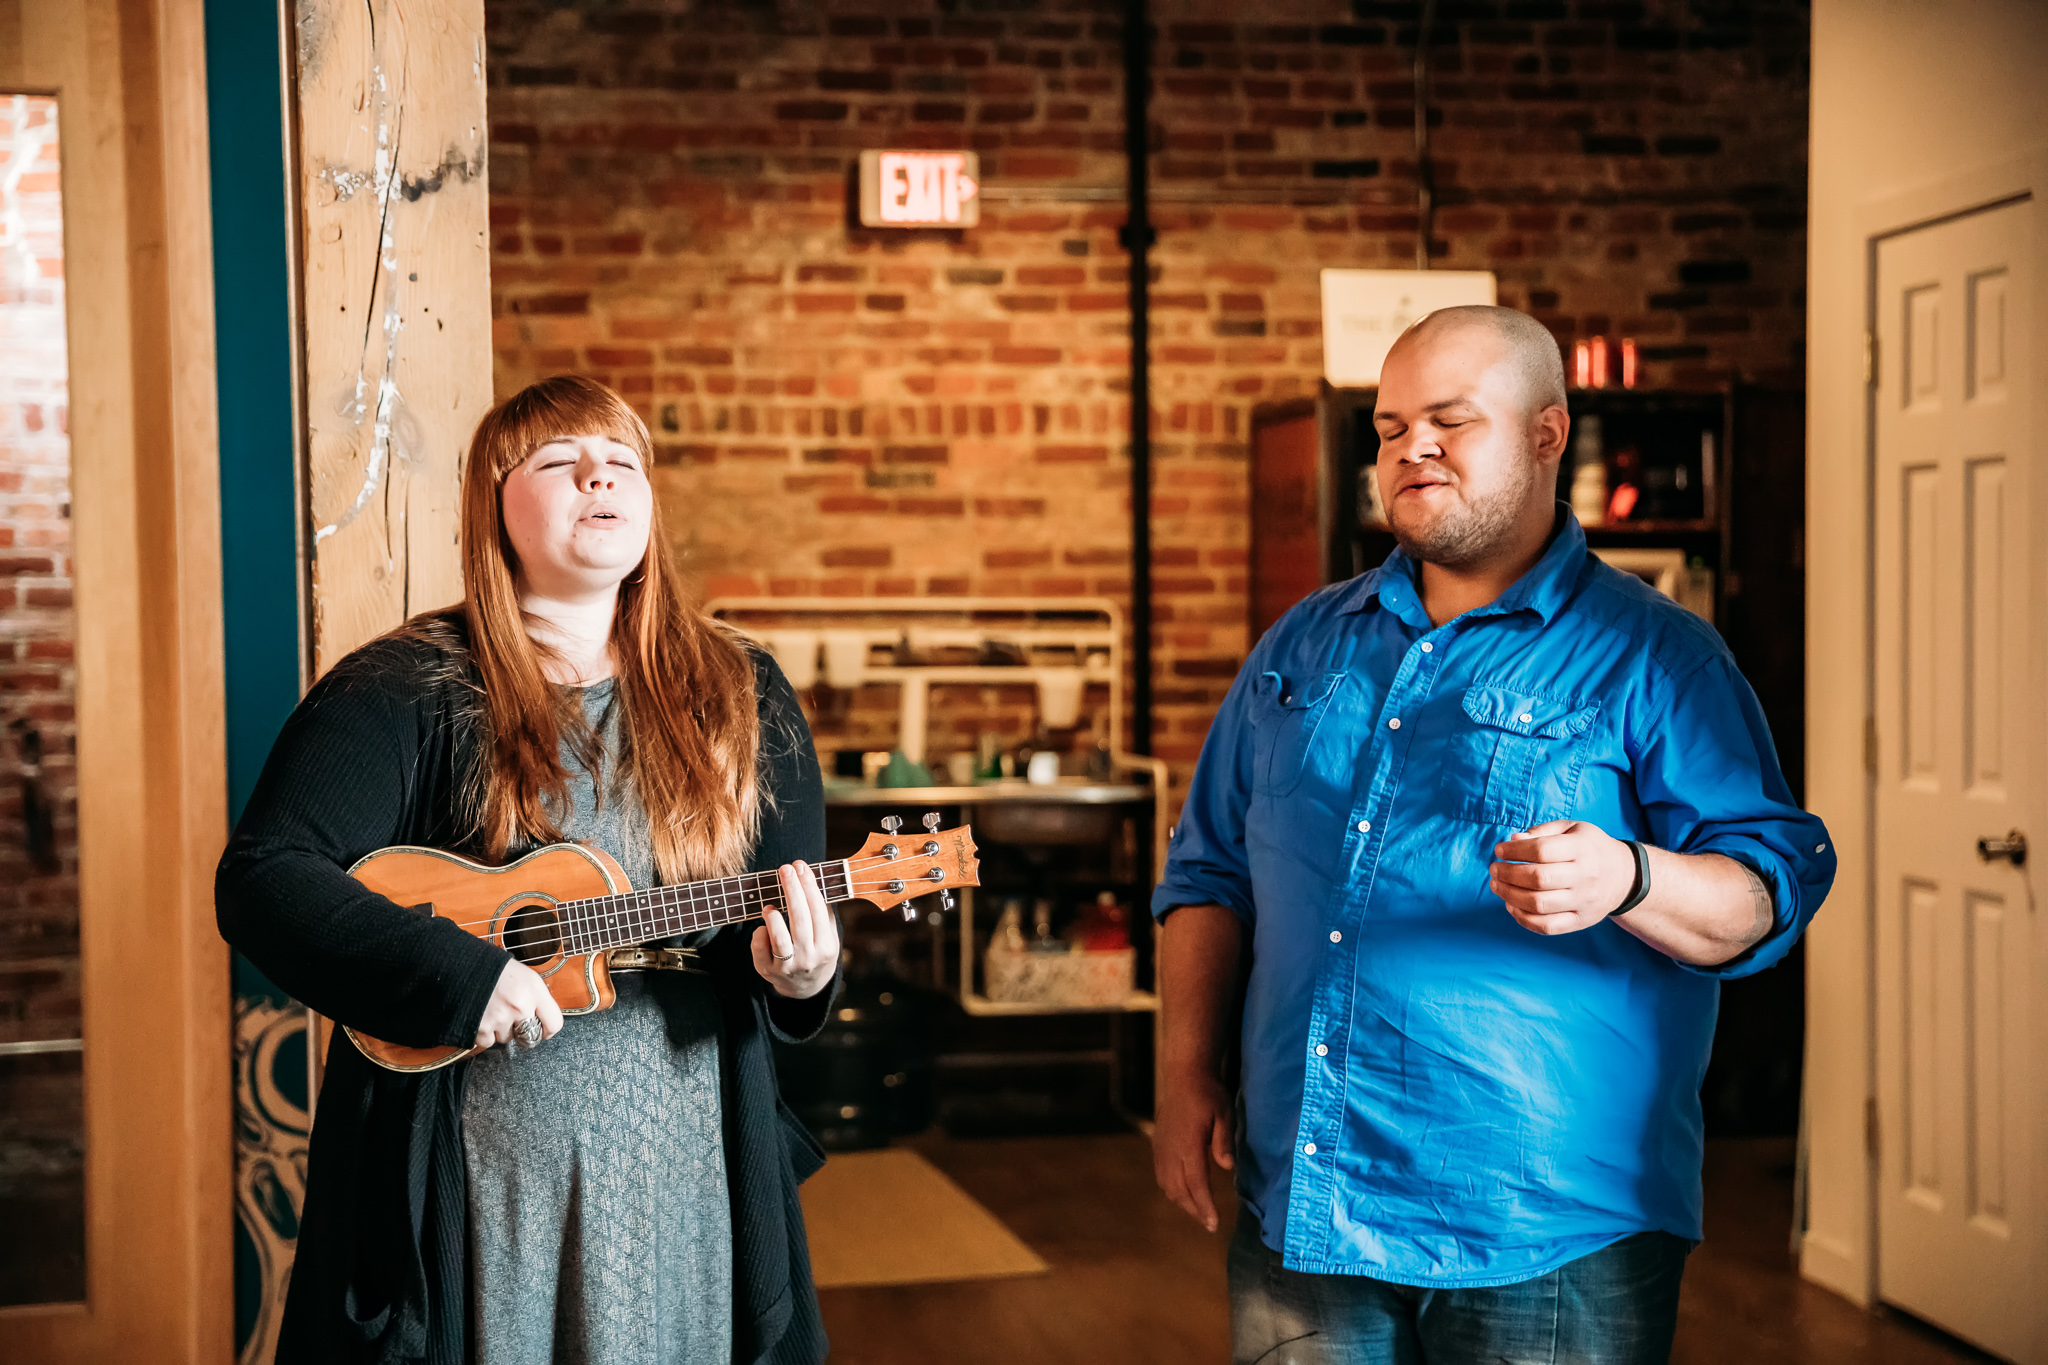 Jessica and Chrys of  Projekts  performed two original songs and won over the hearts of everyone in the room at The Nest Coworking in Peoria's Warehouse District.